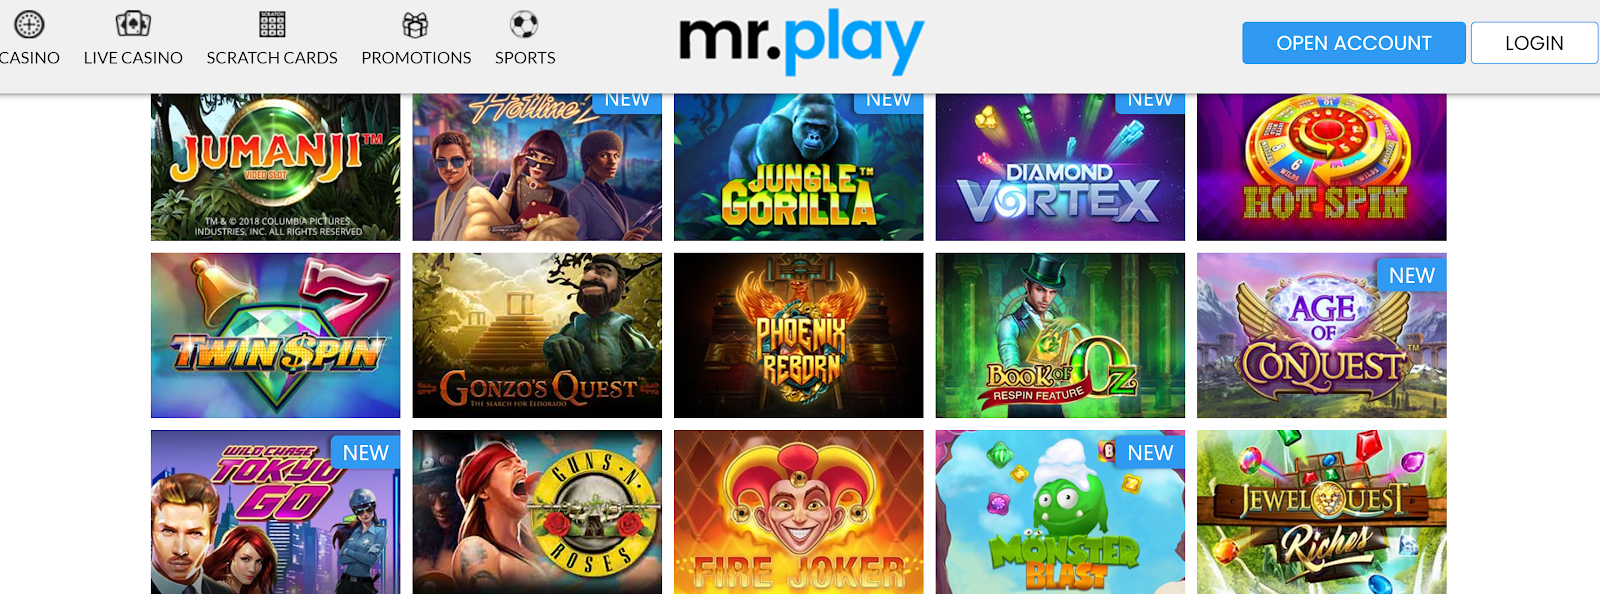 mr.play Casino is one of the best 200 deposit bonus casinos